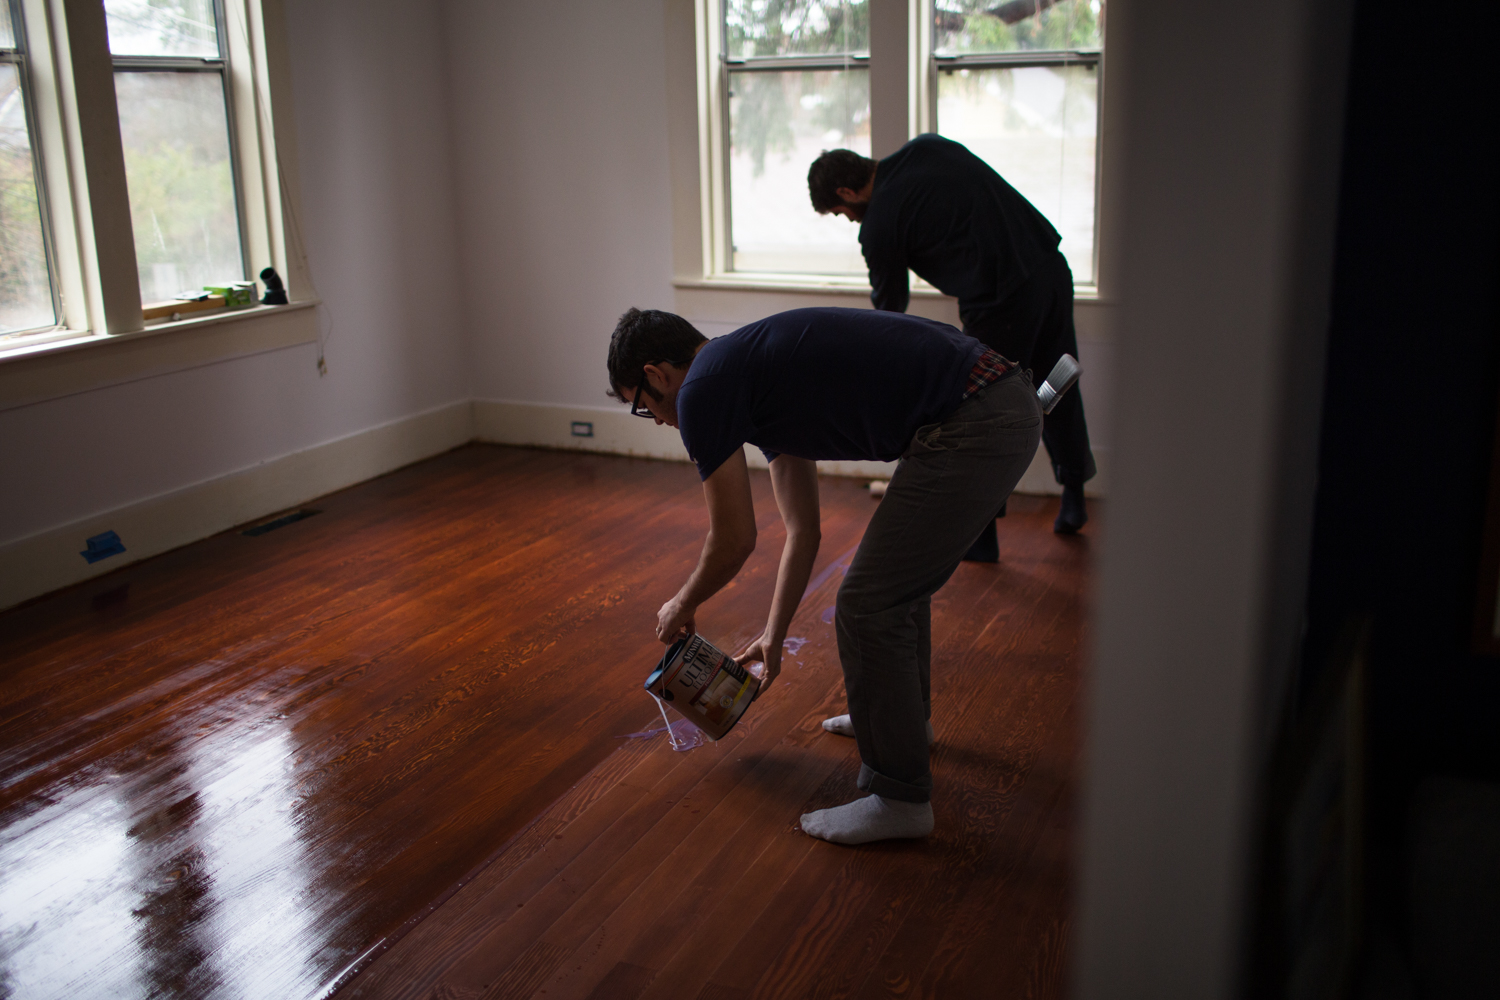 We used Minwax Ultimate Floor Finish in Satin, which is also water-based (no fumes!).Applied the first two coats and did a light sanding before the final coat.